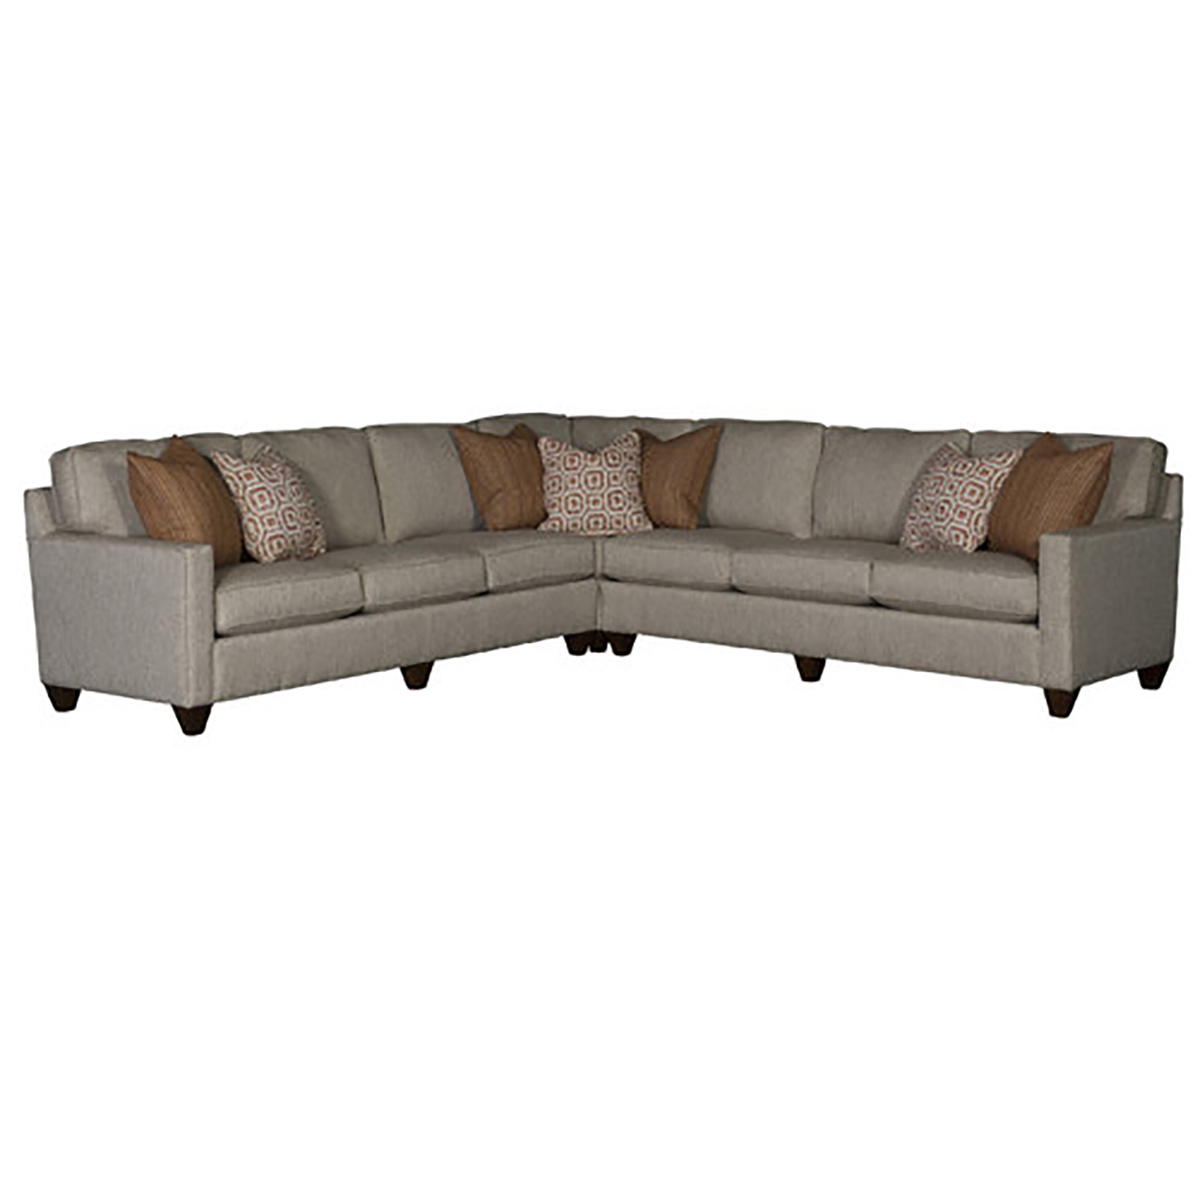 Chelsea Home Sutton Sectional Sofa - Raven Stainless